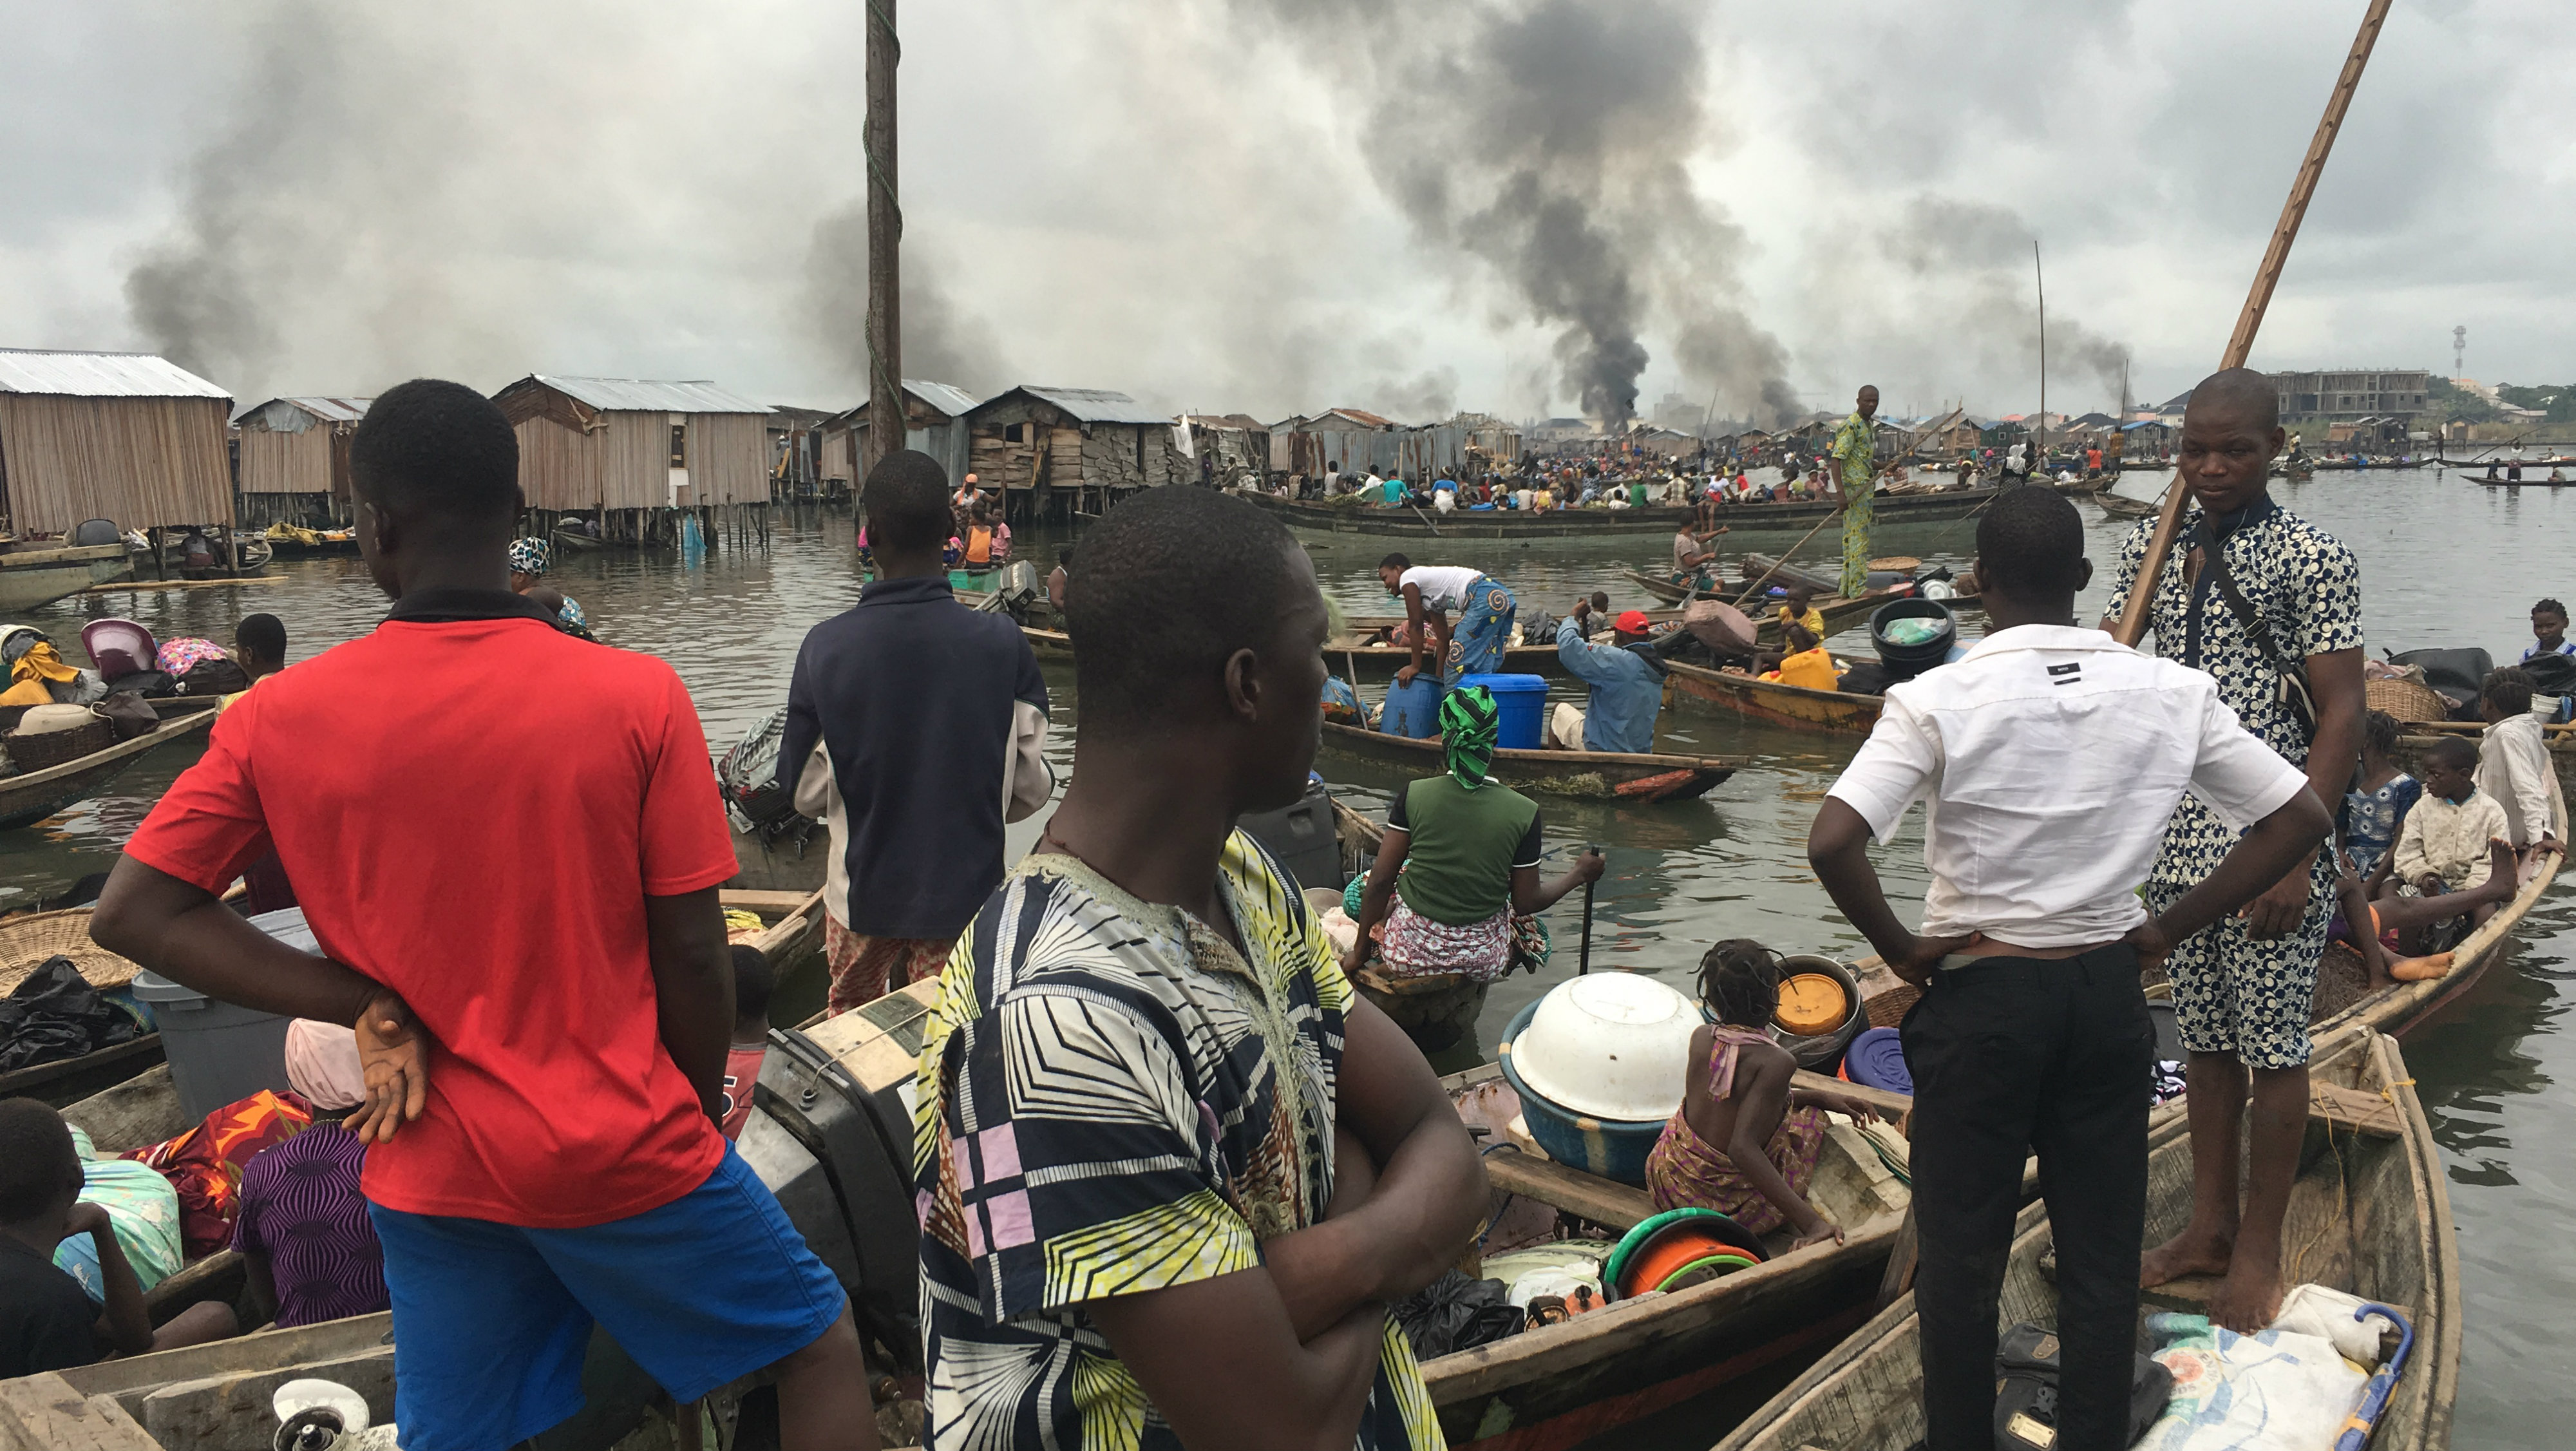 Lagos is doubling down on kicking out thousands of waterfront slum dwellers - Quartz